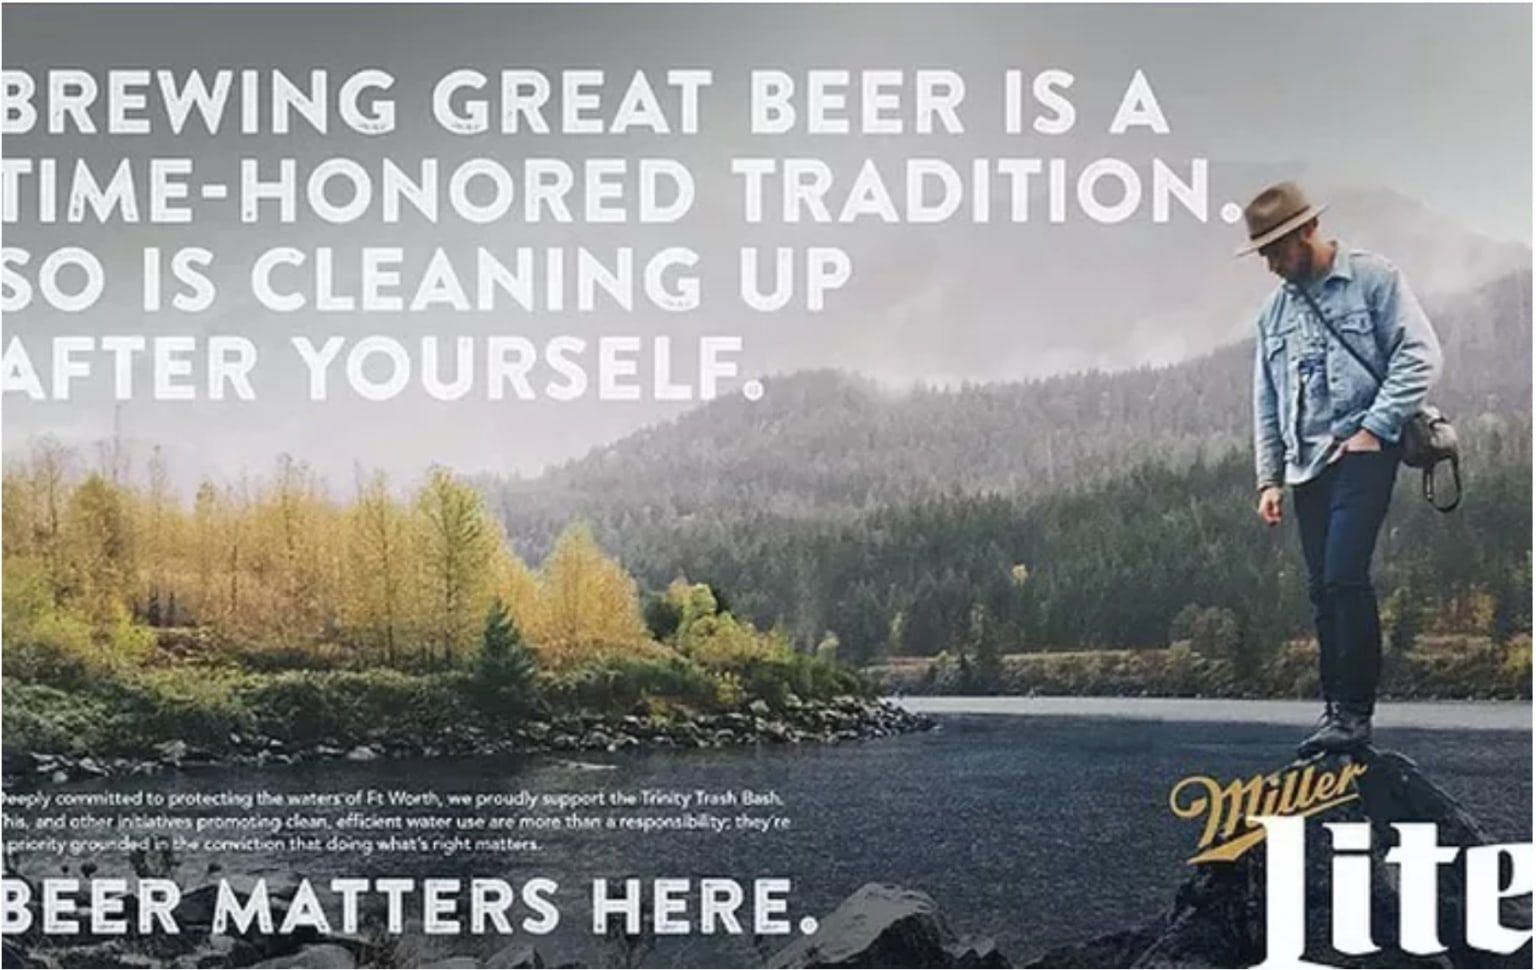 MillerCoors: Legislation Initiative